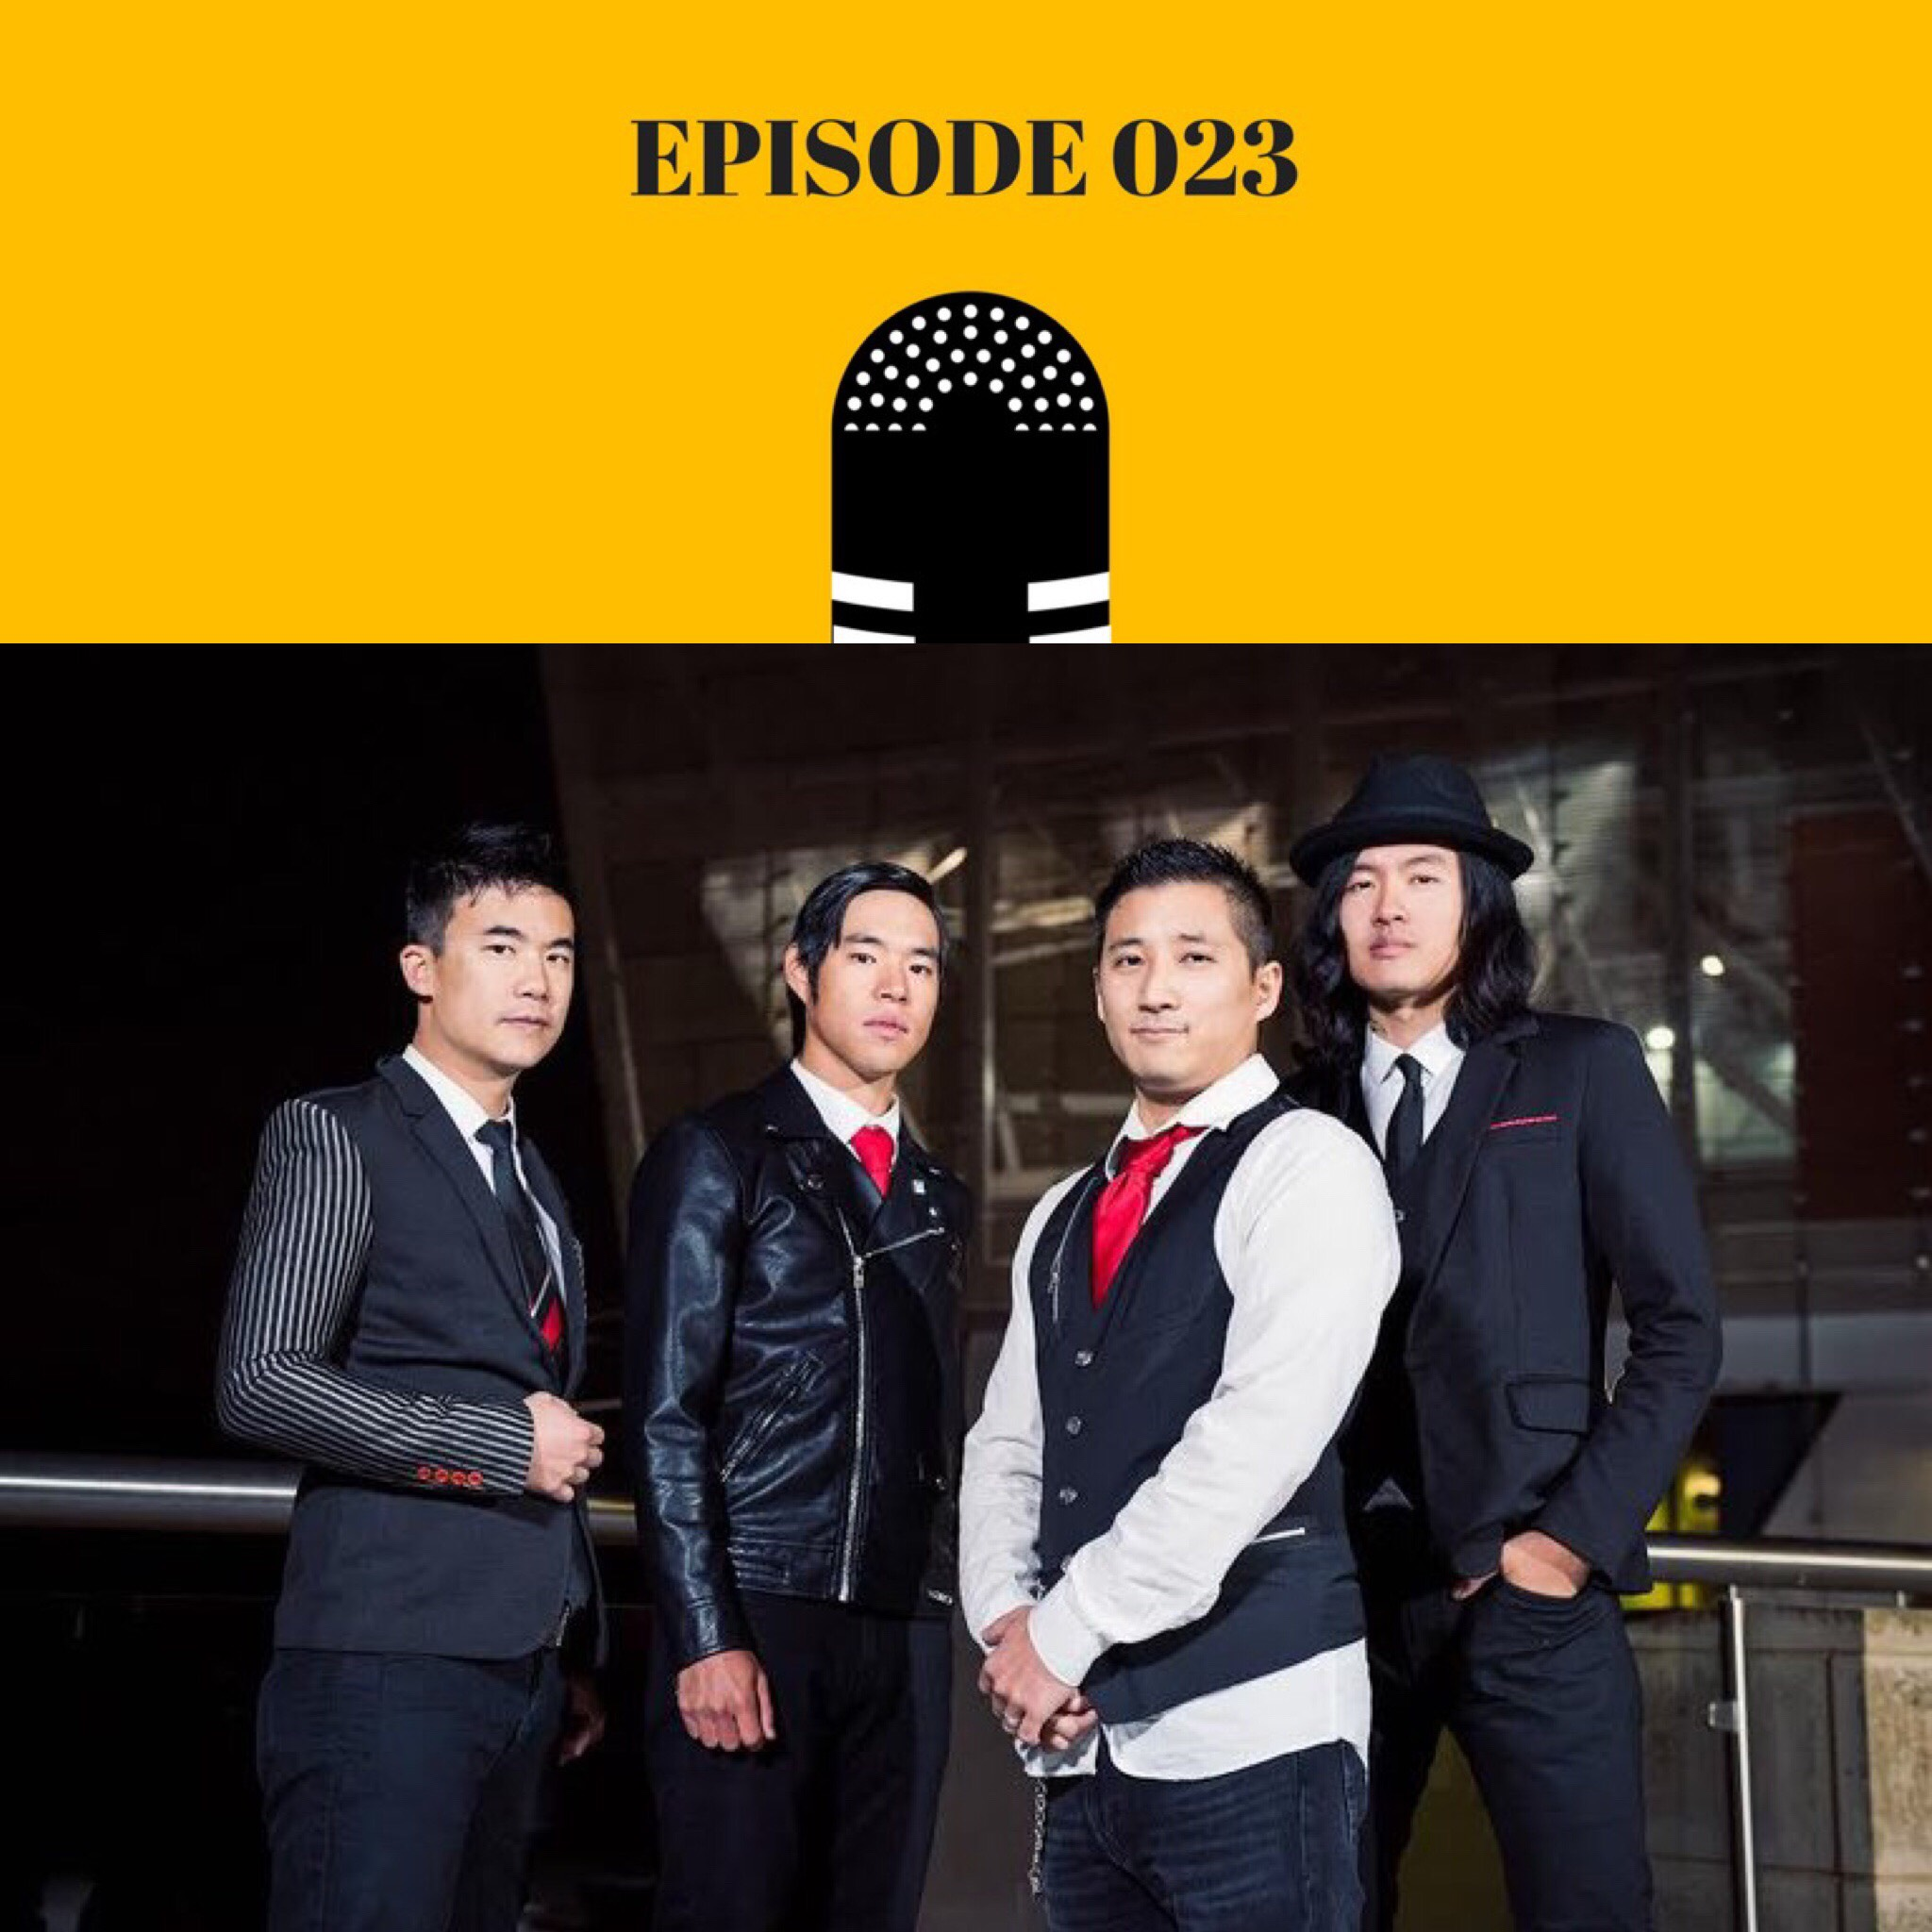 023: A Bittersweet Victory [Guest: Simon Tam]